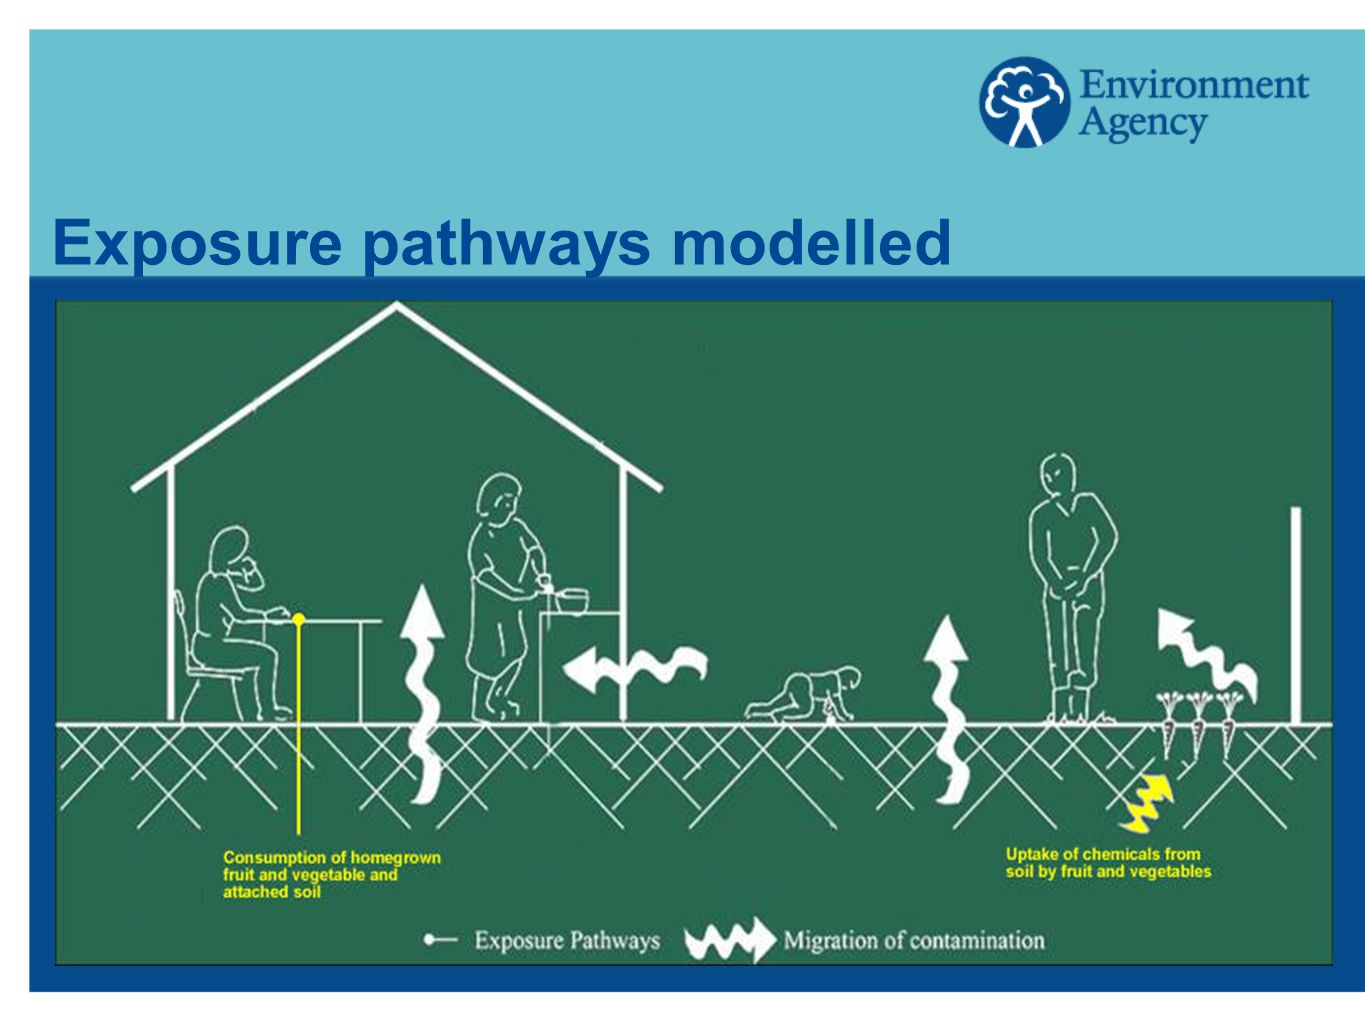 Exposure pathways modelled